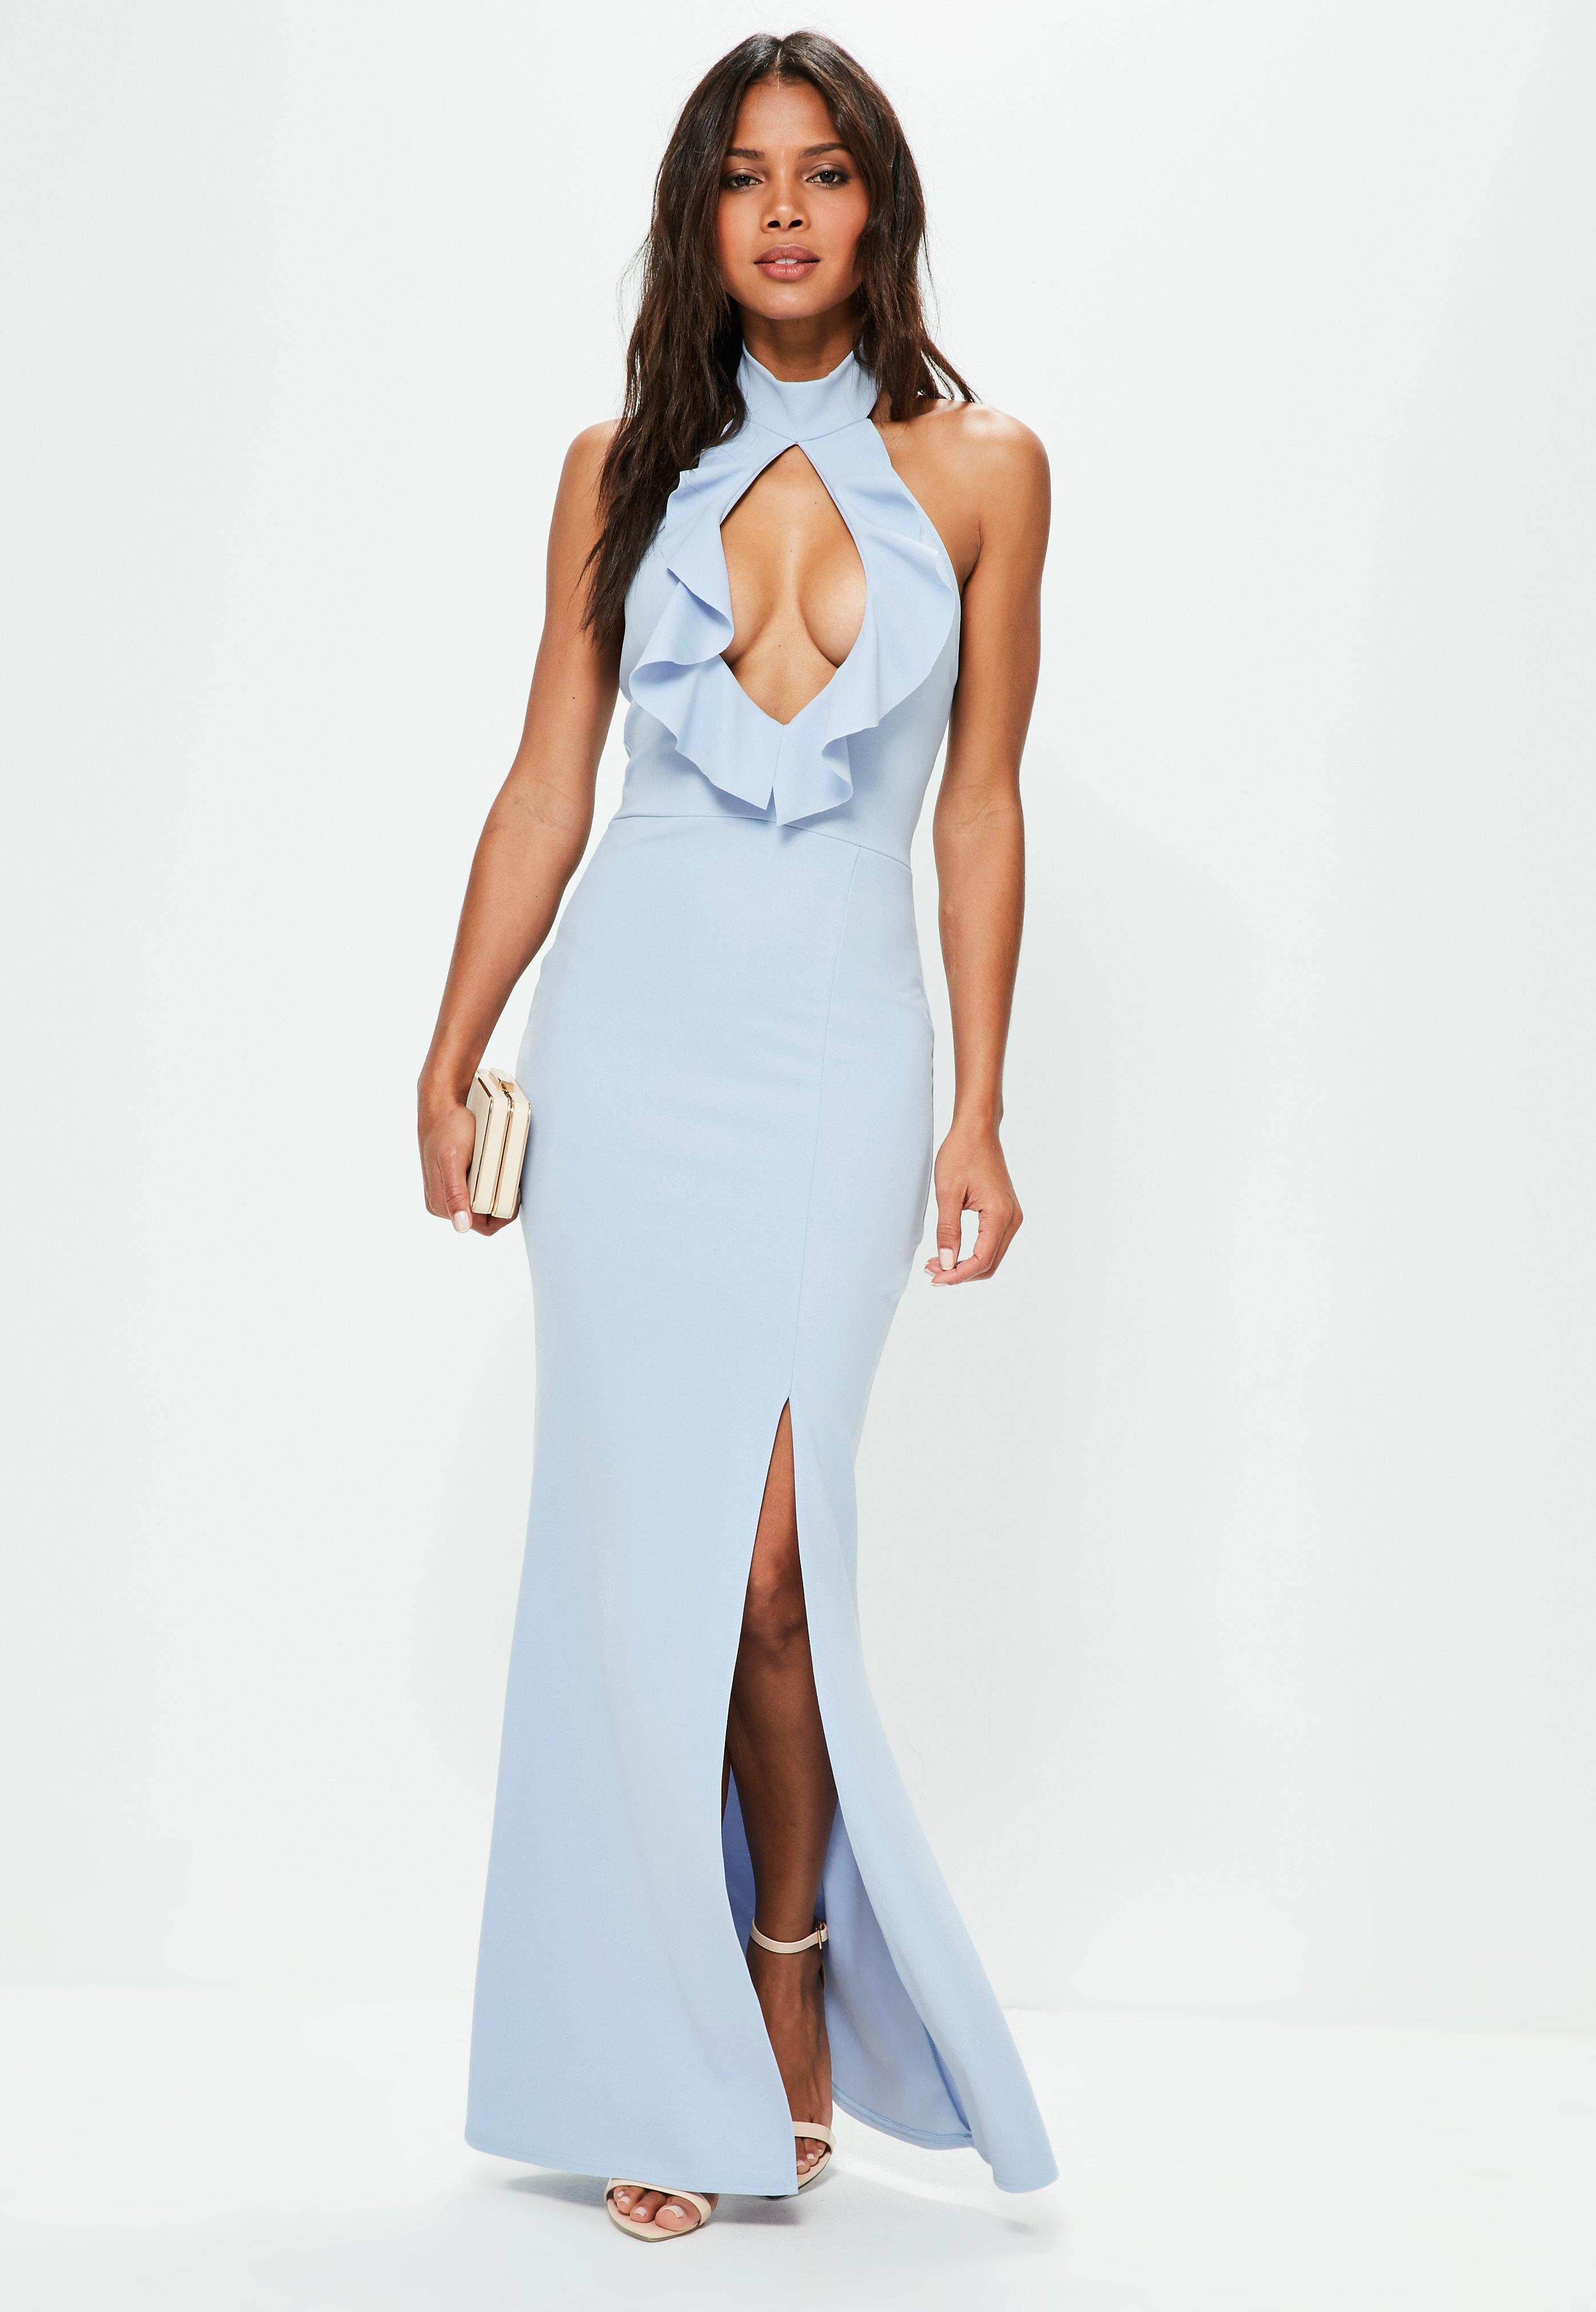 Lyst - Missguided Blue High Neck Keyhole Frill Detail Maxi Dress in Blue 4d7bd8a6b